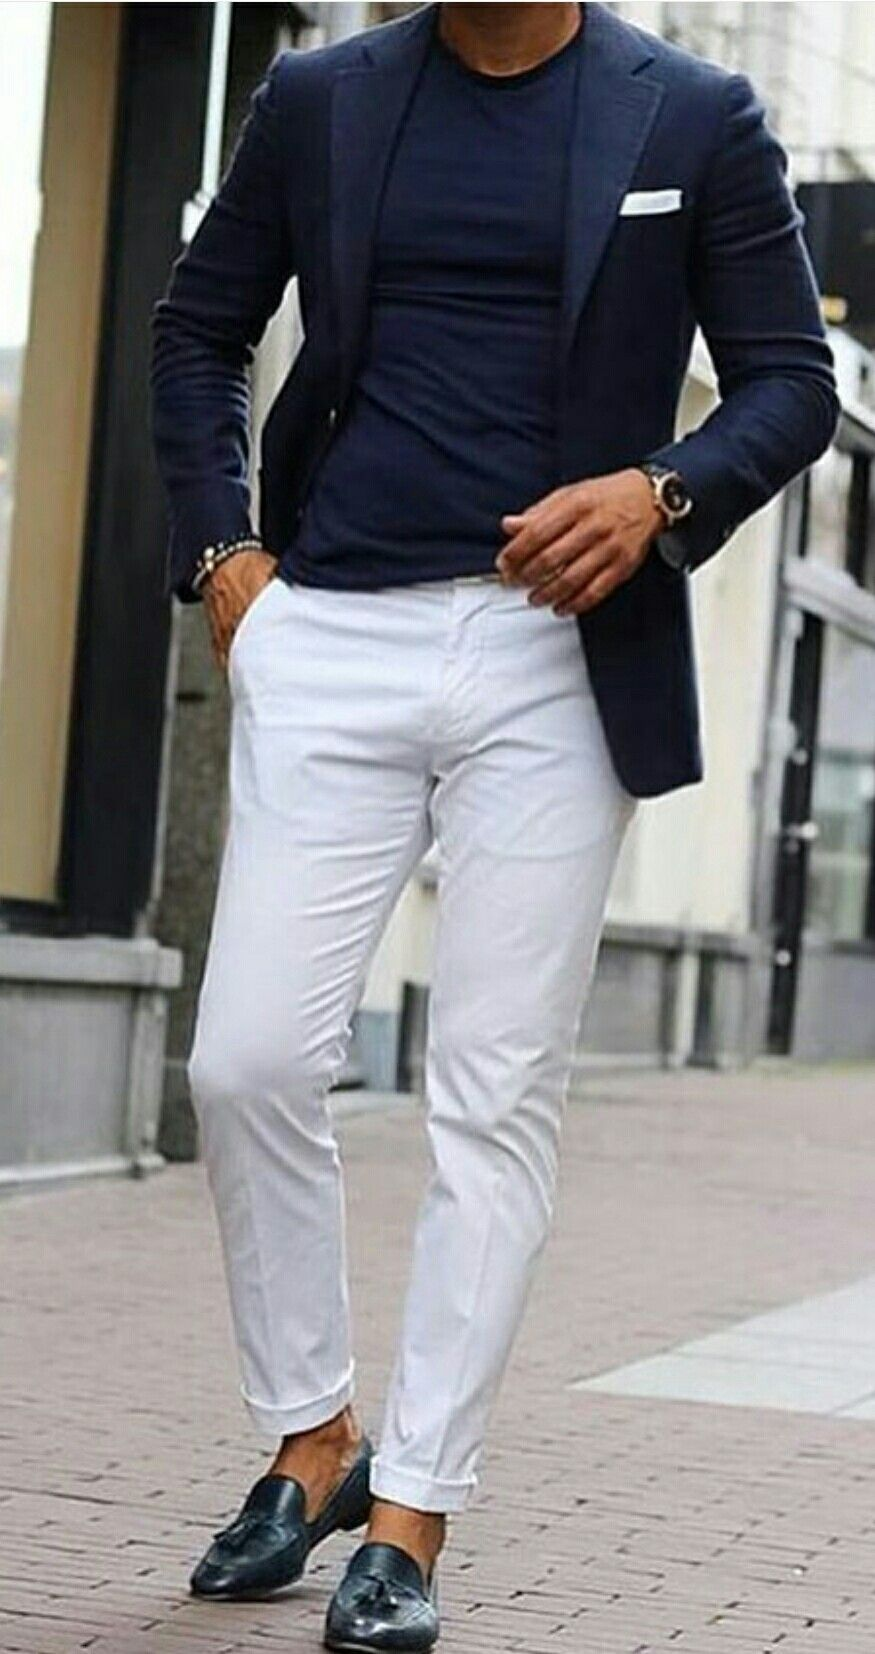 64bb02a9a660 mens fashion style - dark blue blazer and white chino summer style ...